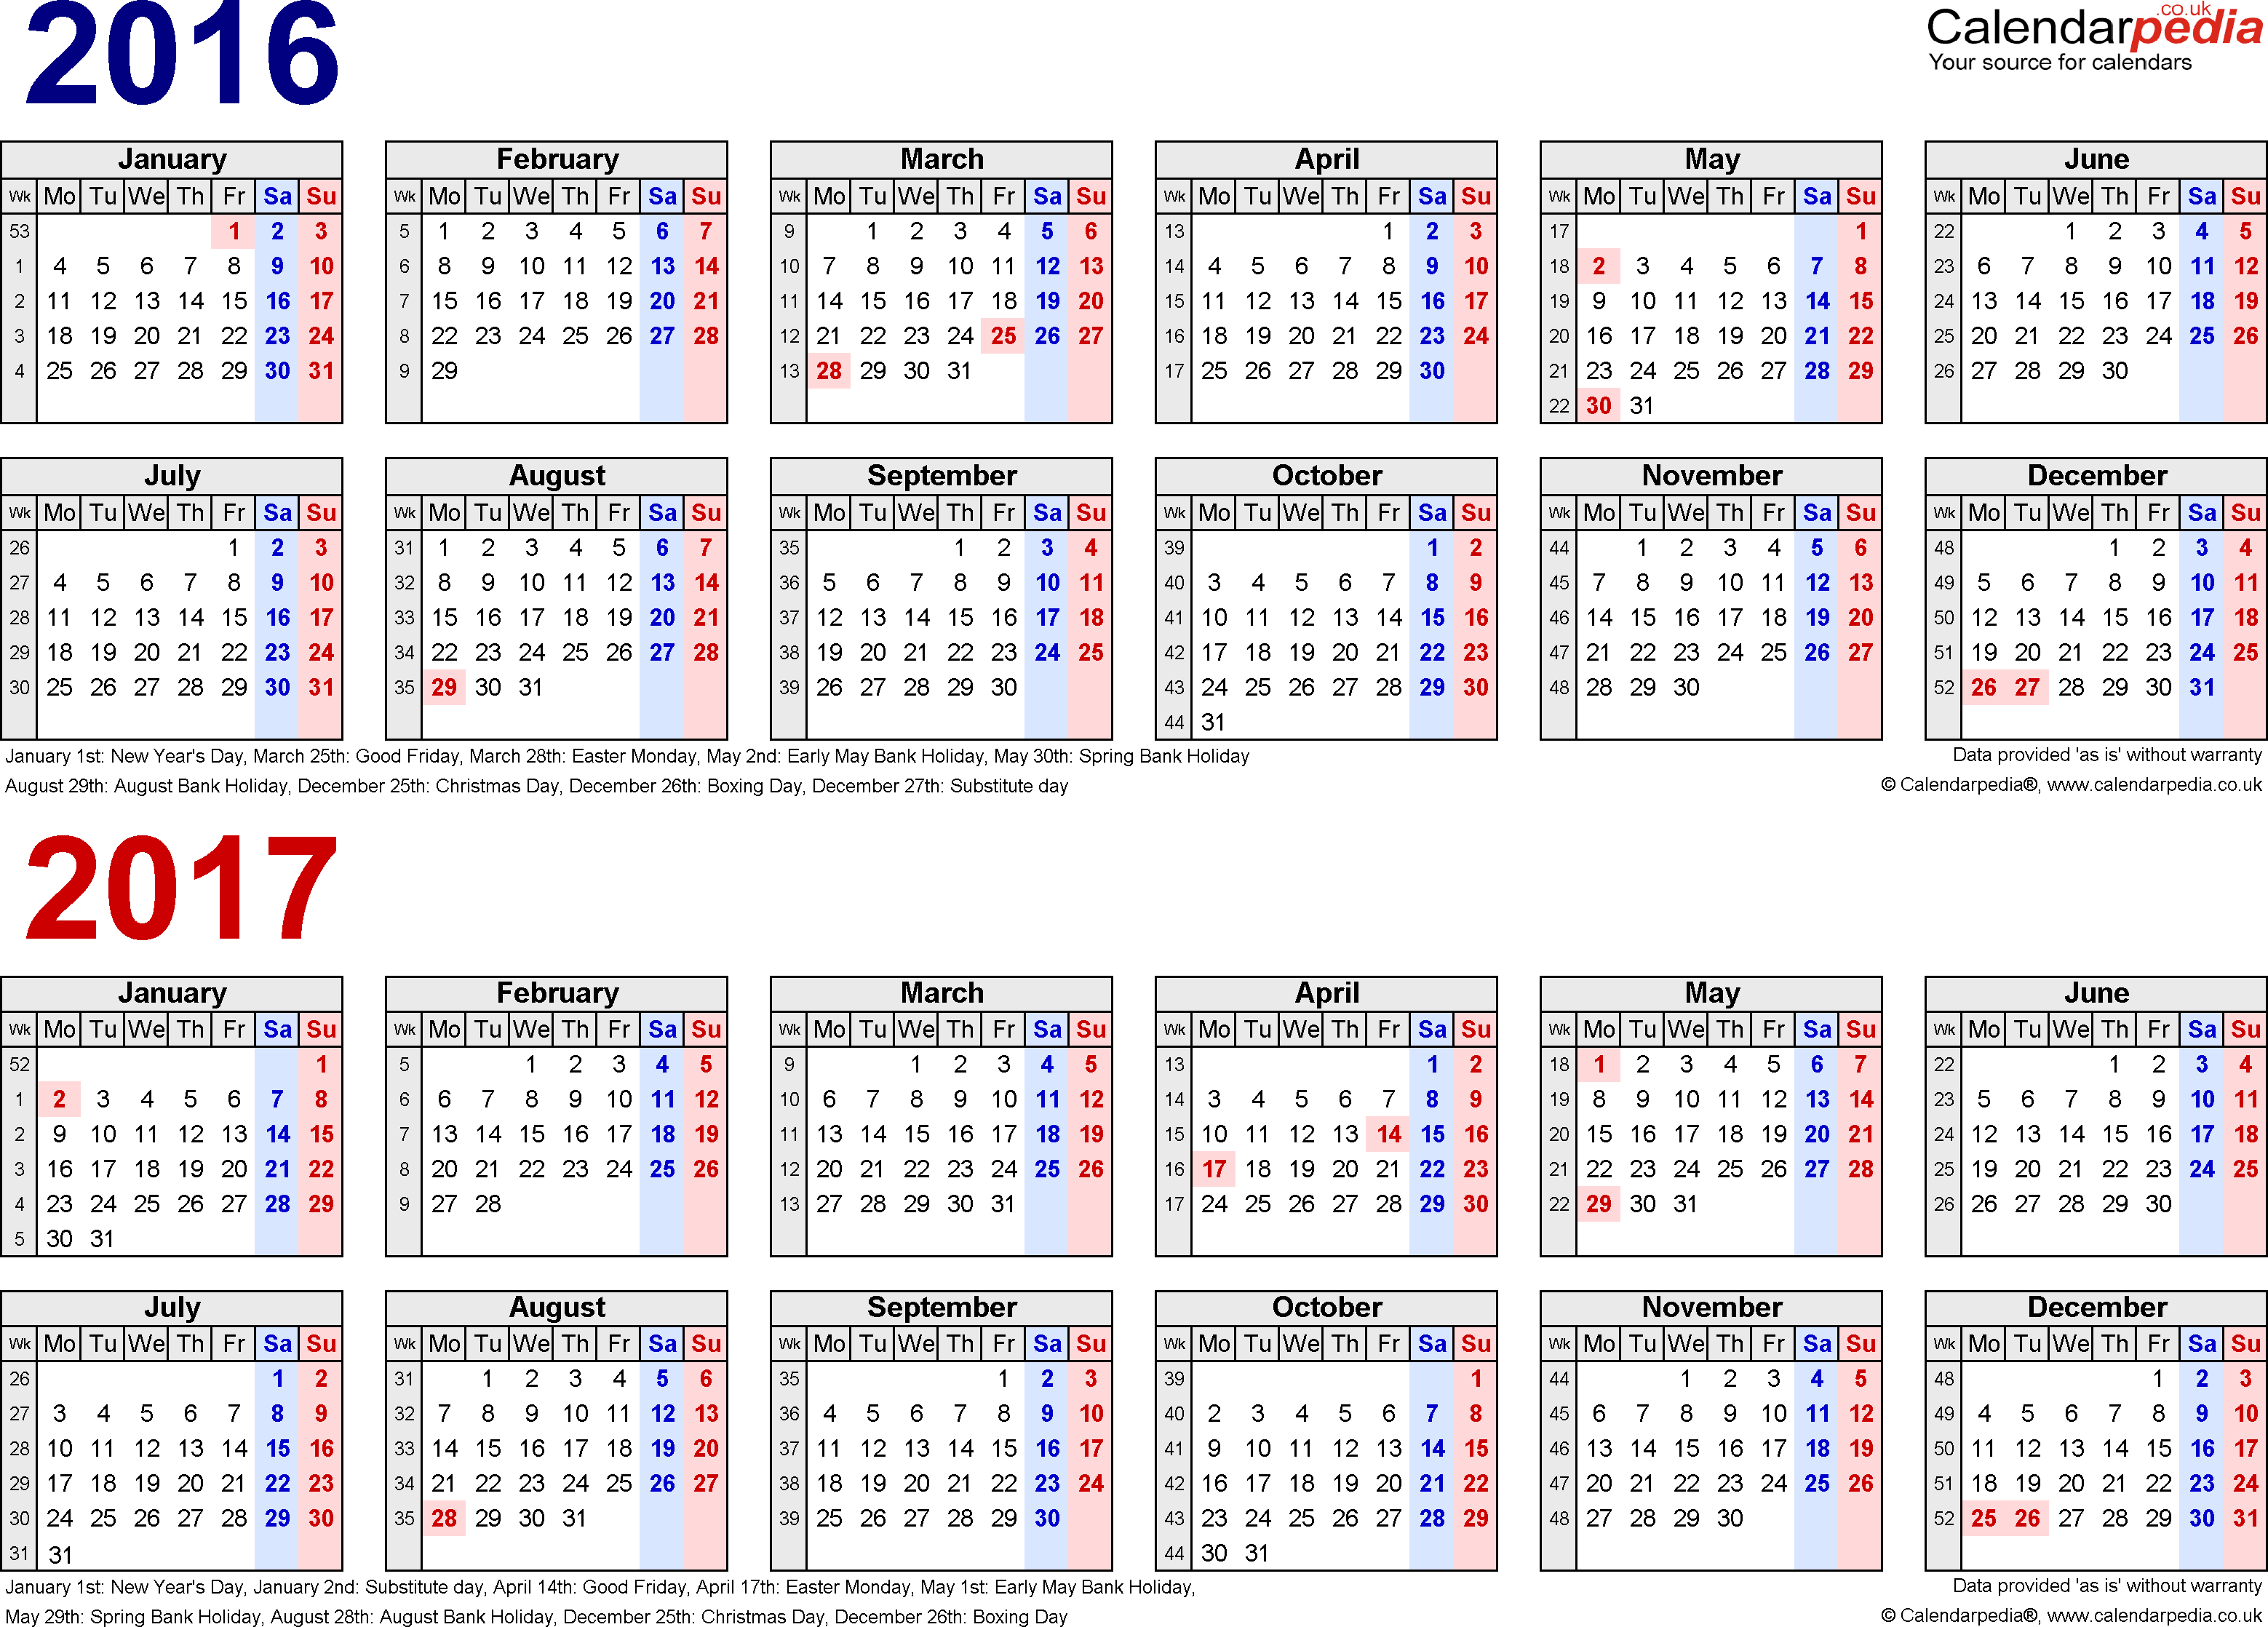 Two year calendars for 2016 & 2017 (UK) for Word